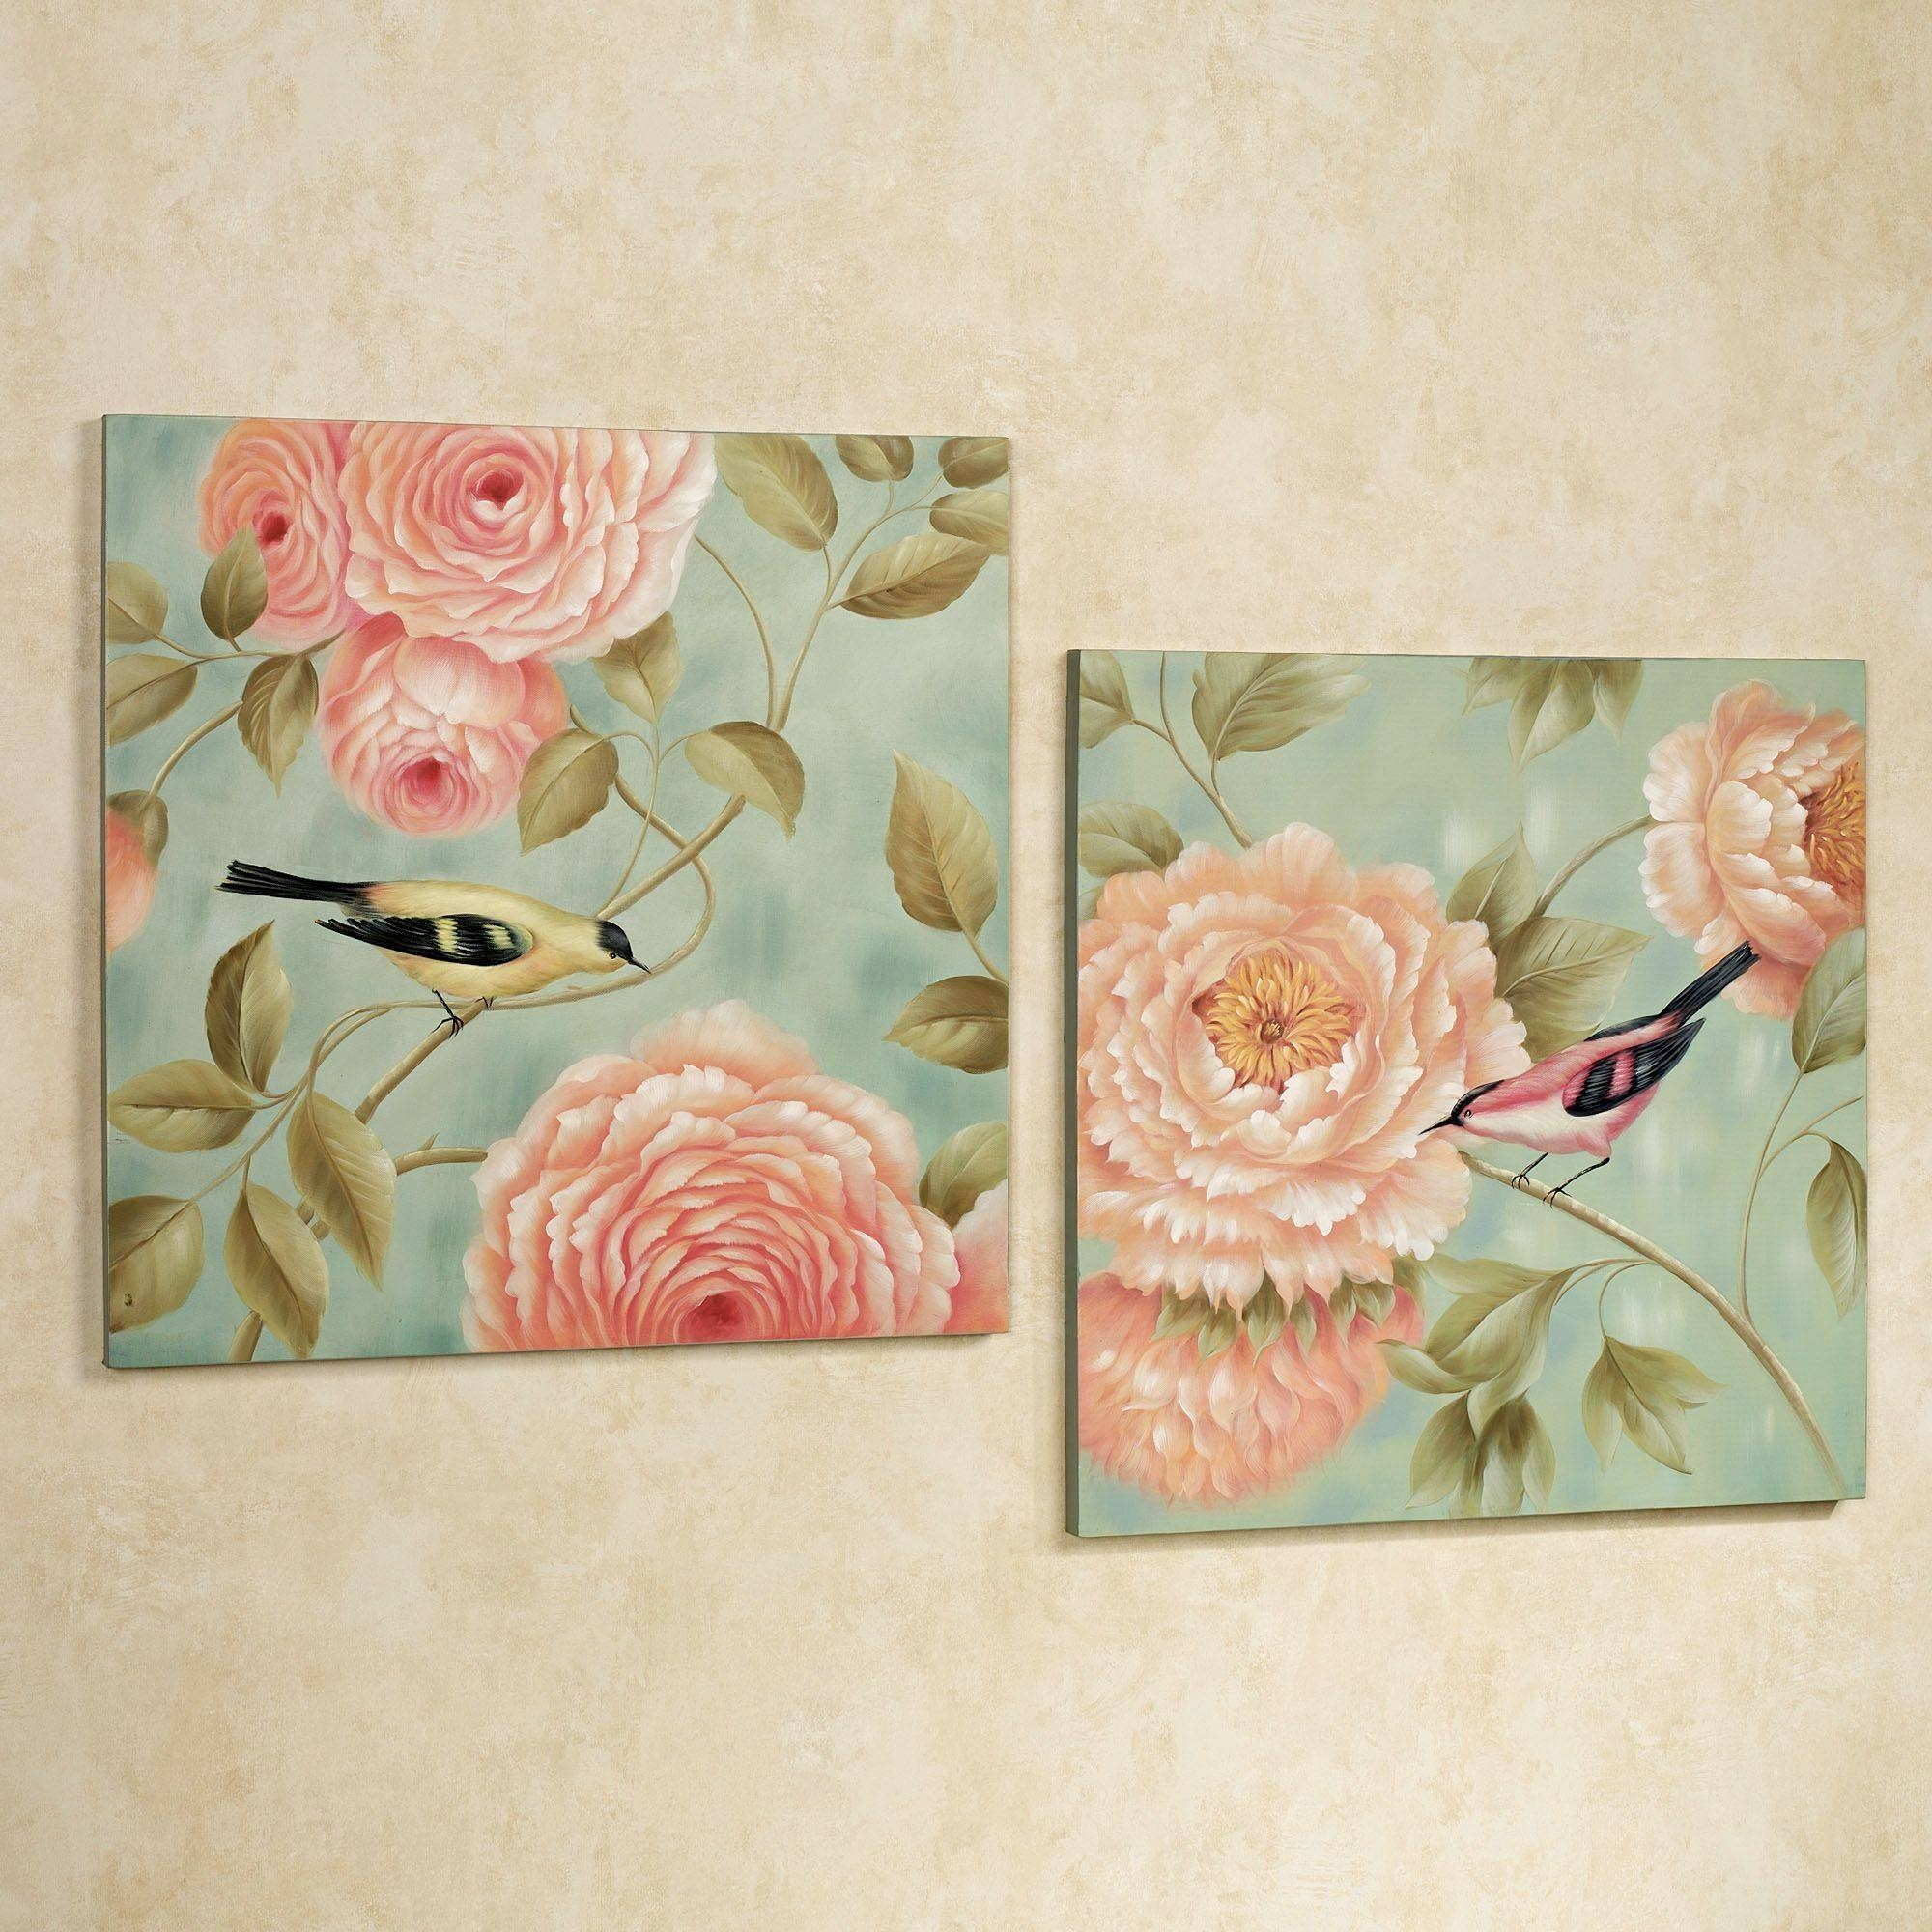 Birds Perchedflowers Canvas Wall Art Set Within Most Recent Pink Flower Wall Art (View 6 of 20)